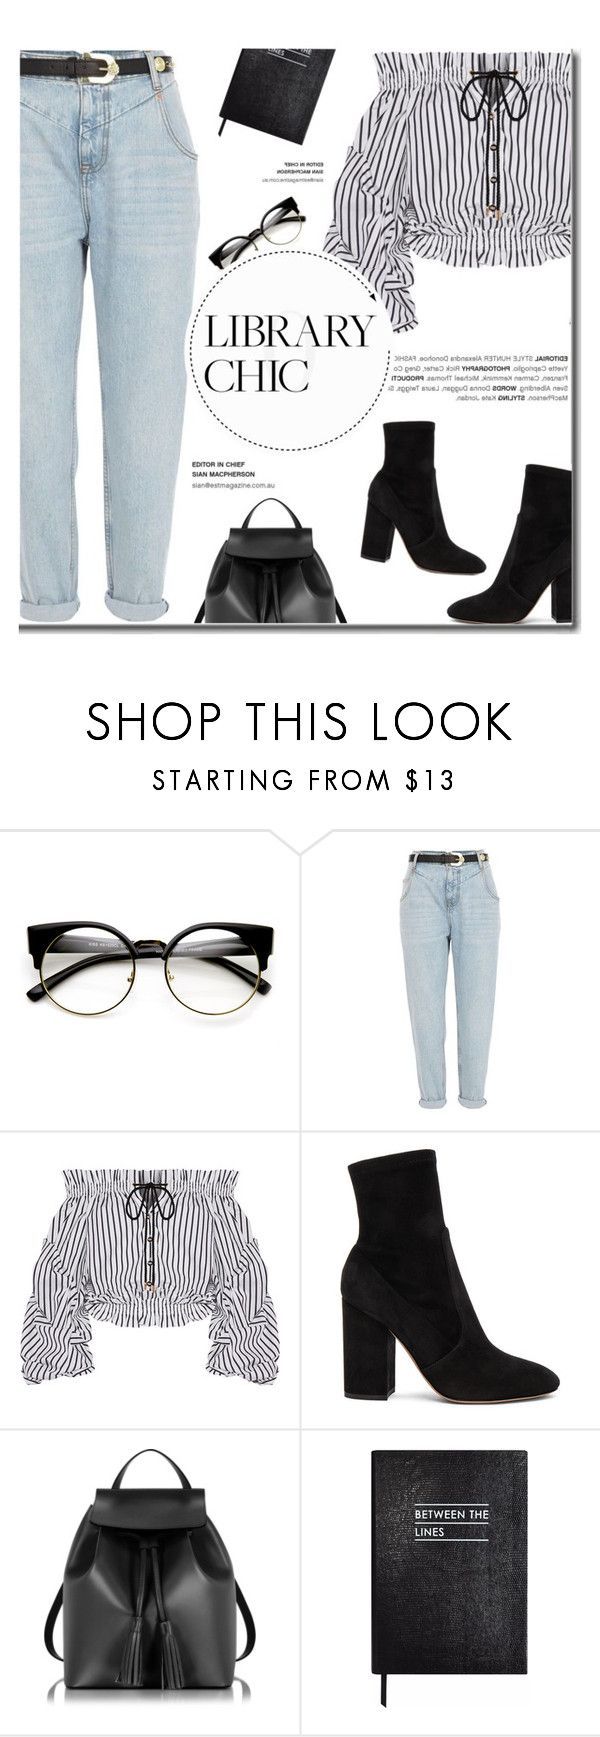 """""""Study Session: Library Chic"""" by fashion-bea-16 ❤ liked on Polyvore featuring ZeroUV, River Island, Caroline Constas, Valentino, Le Parmentier, Sloane Stationery, polyvoreeditorial and librarychic"""